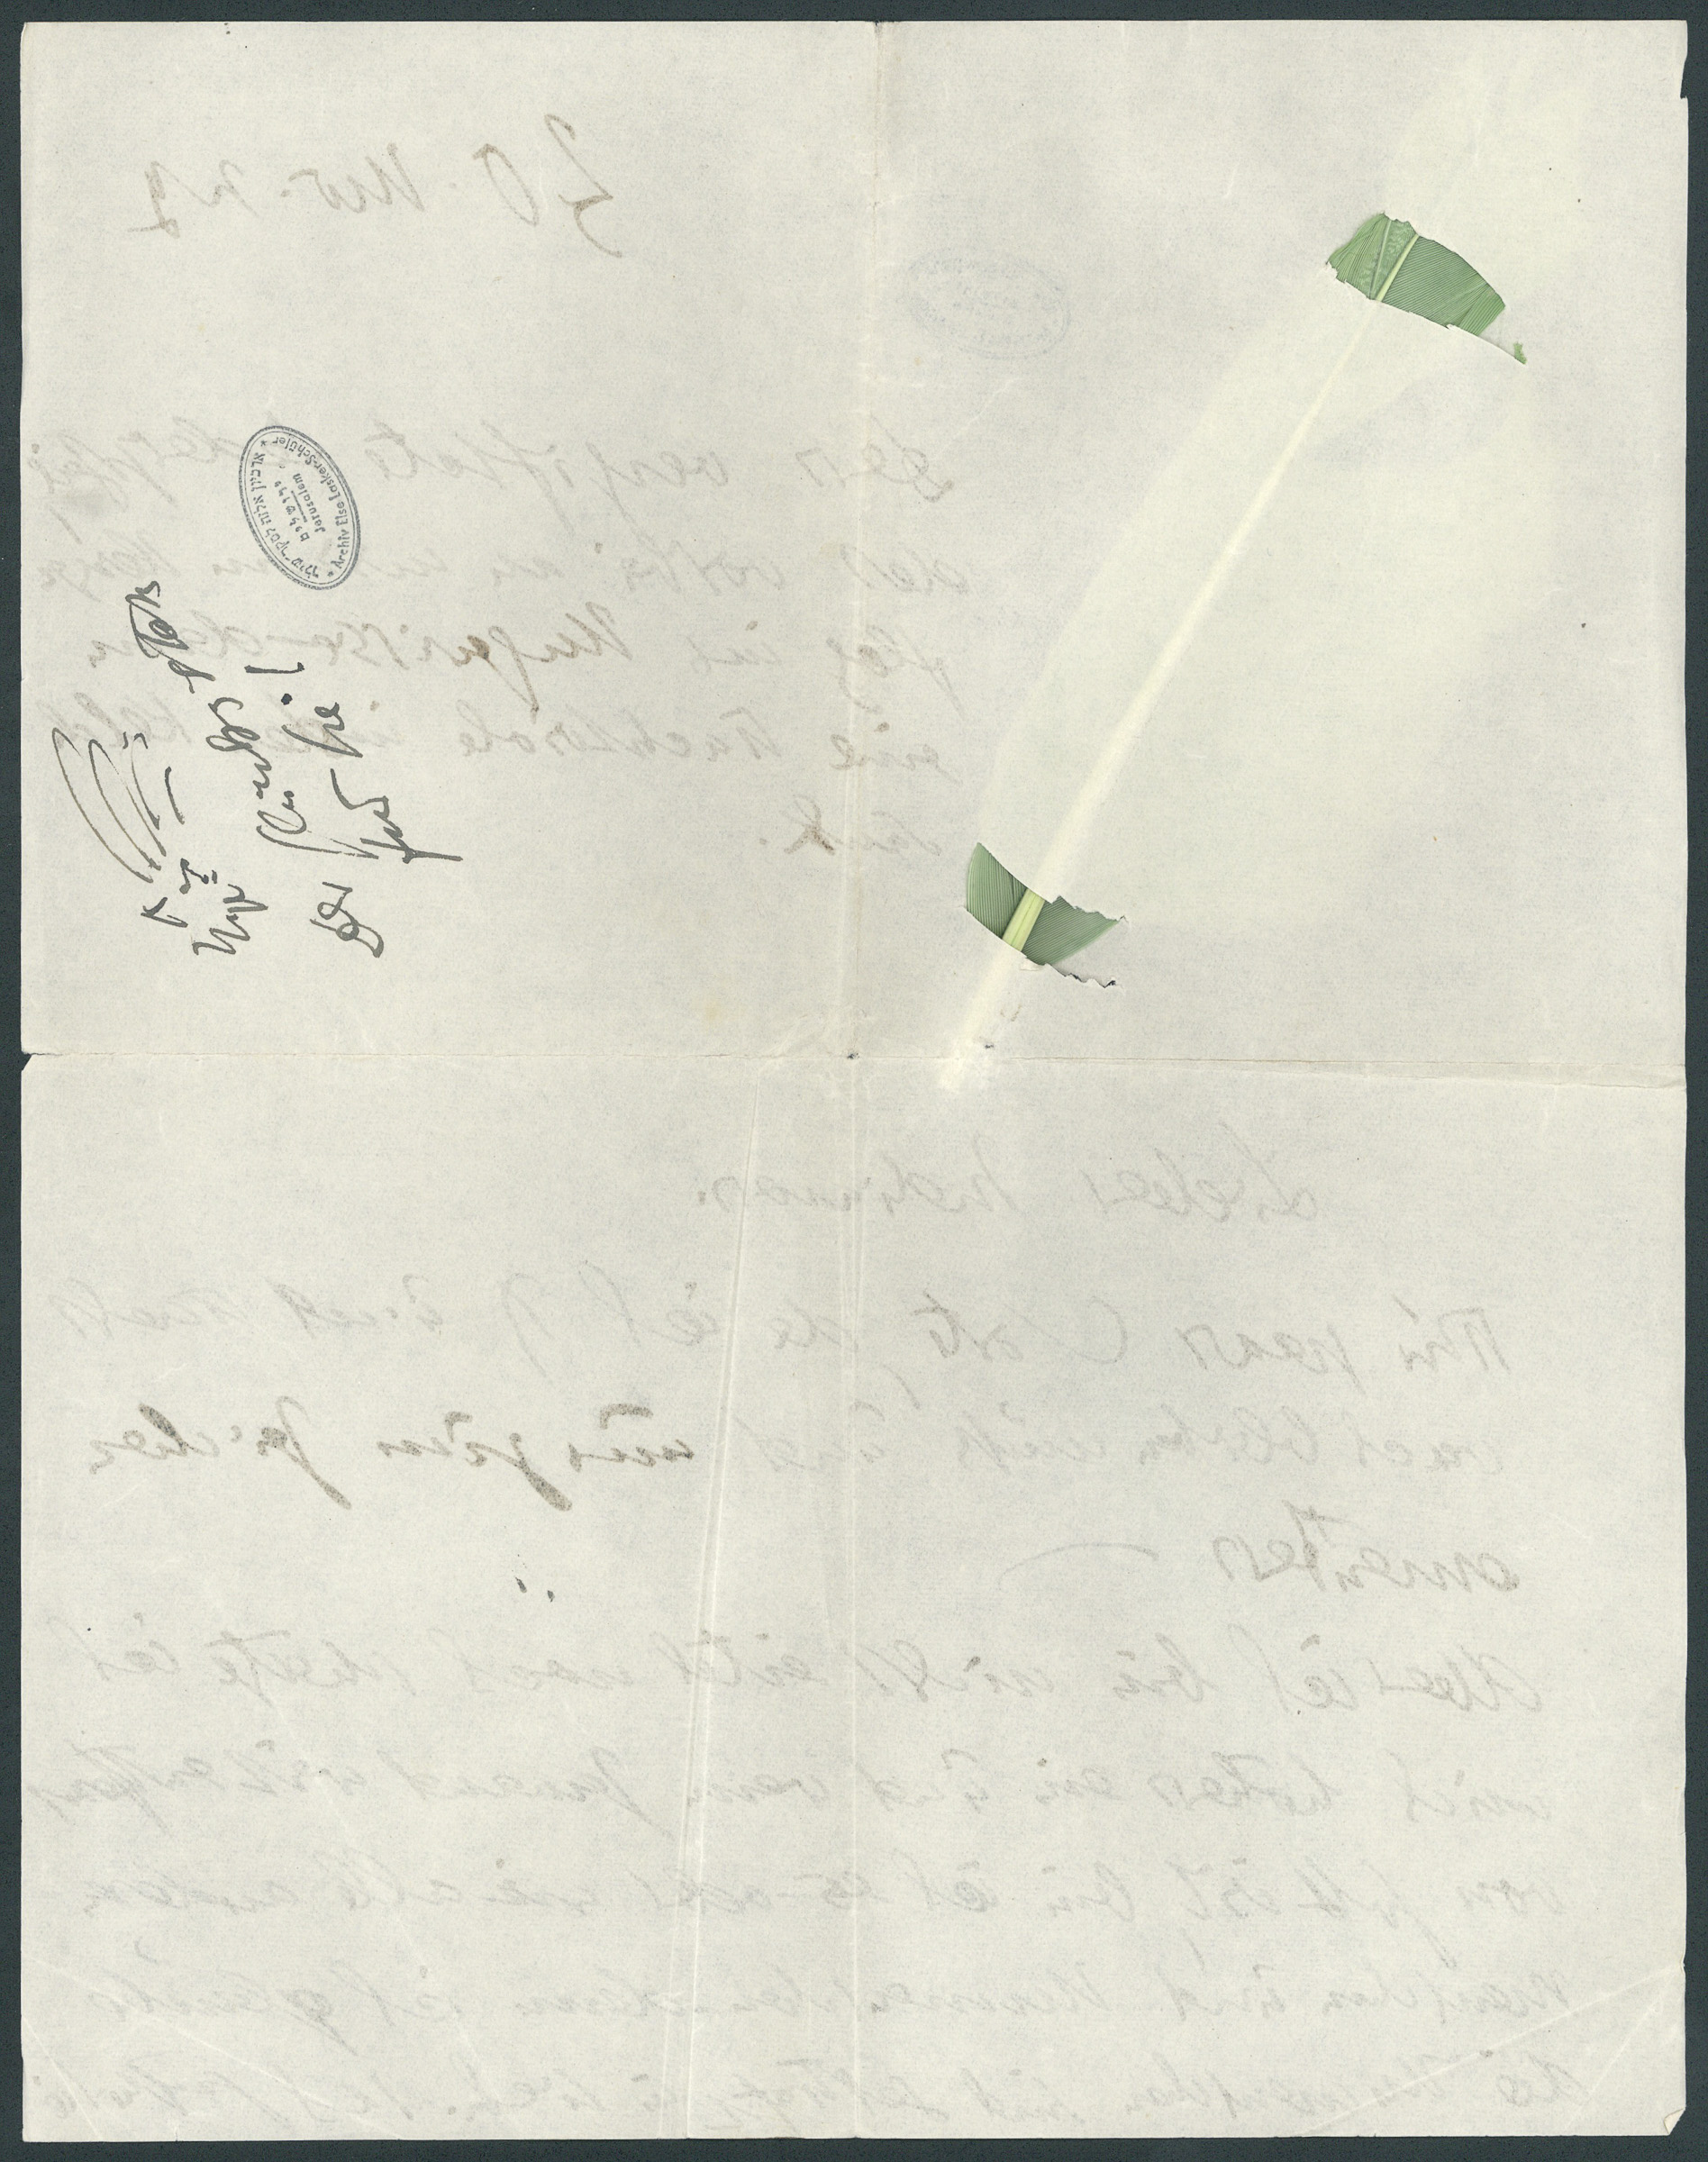 Letter to Paul Goldscheider (p. 2)